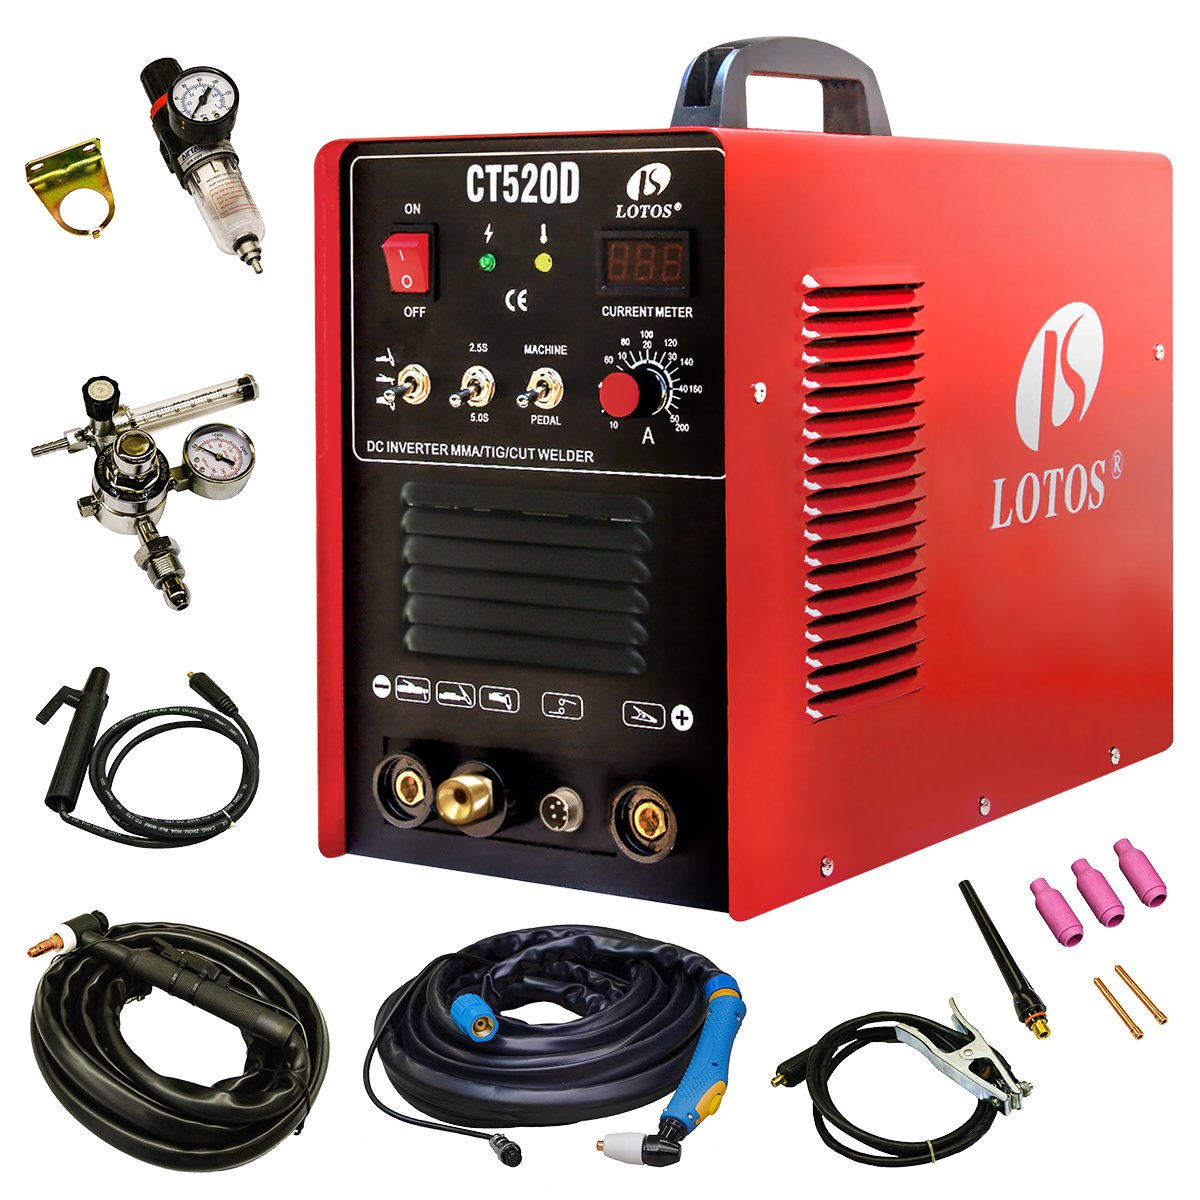 Lotos CT520D Plasma Cutter Tig Stick Welder 3 in 1 Combo Welding Machine, 50Amp Air Plasma Cutter,  200A TIG/ Stick Welder, Dual Voltage 220V/110V by Lotos Technology